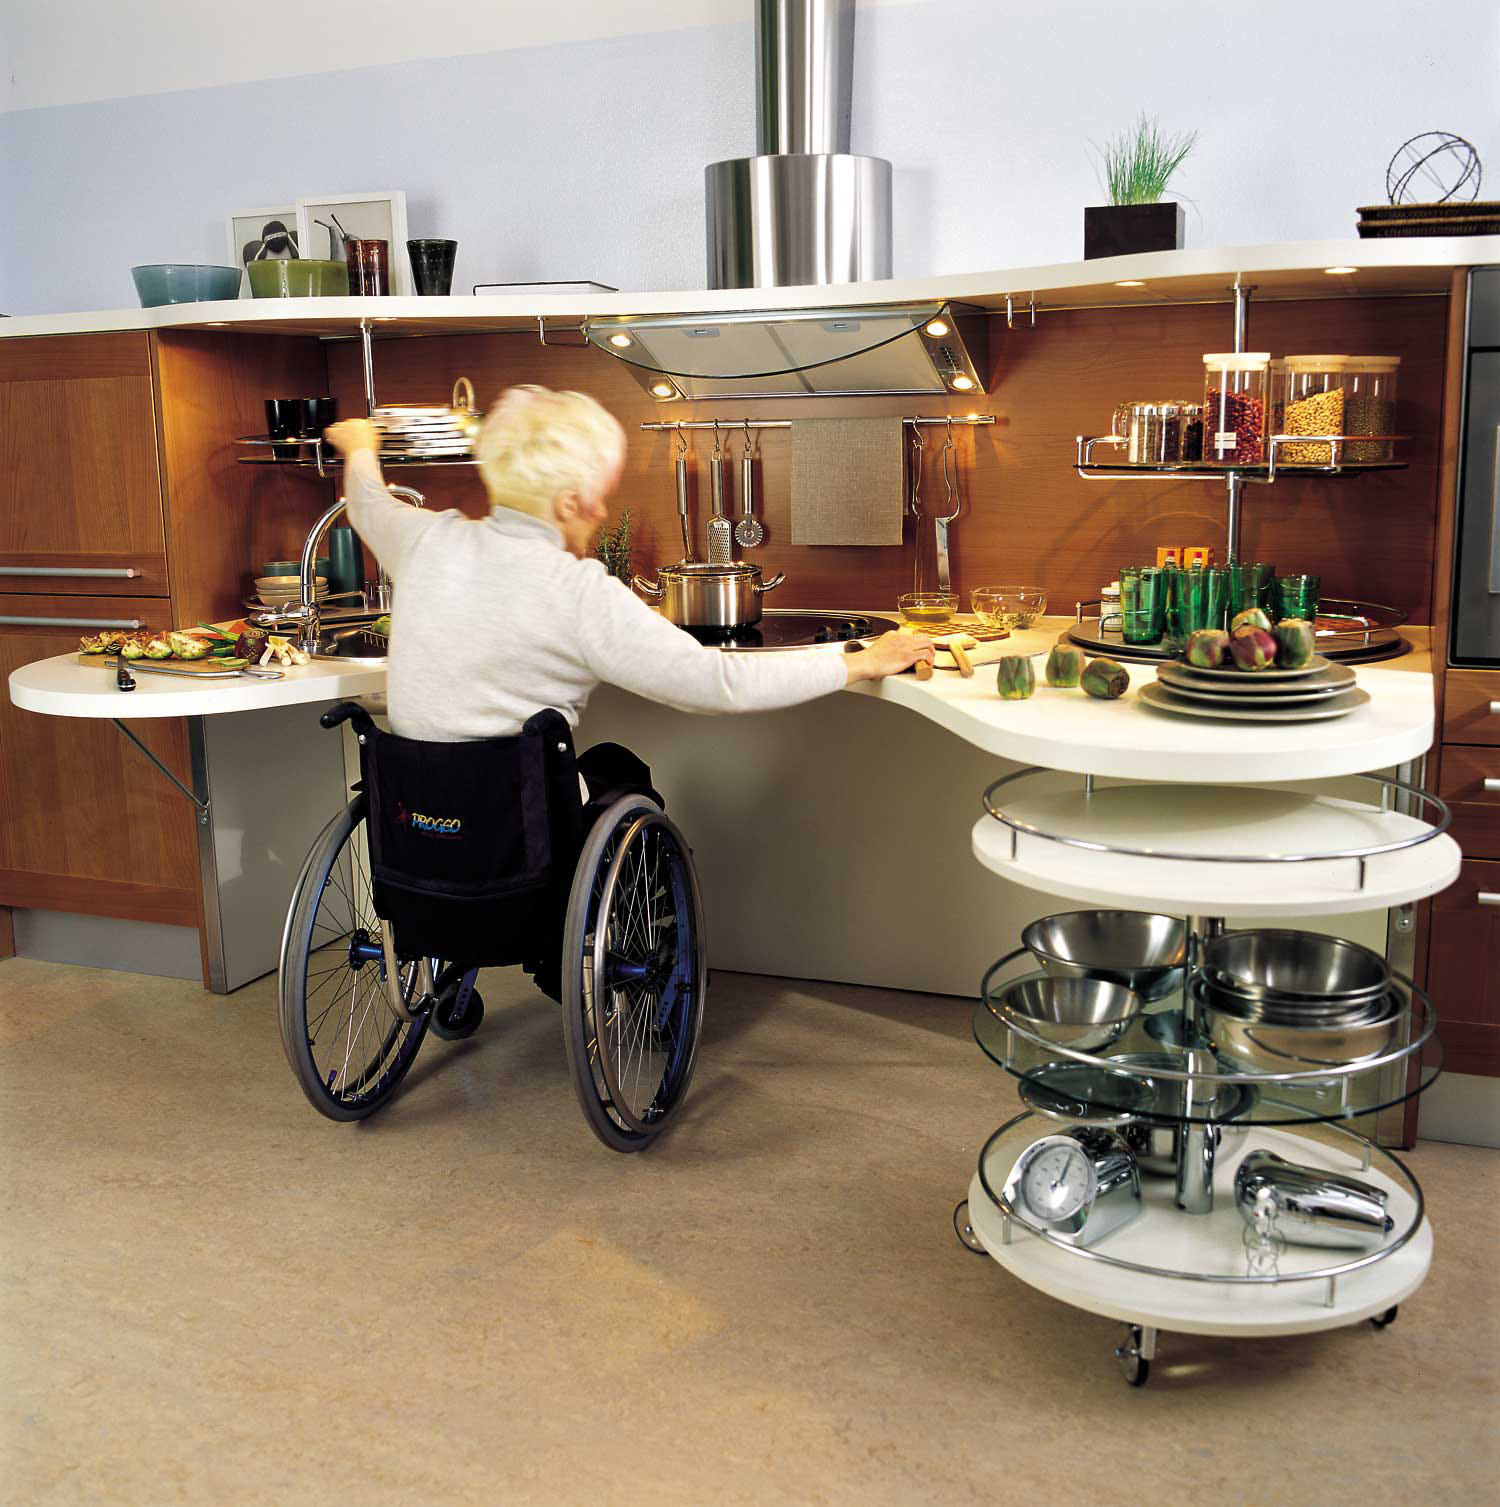 Ergonomic Italian Kitchen Design Suitable For Wheelchair Users IDesignArch